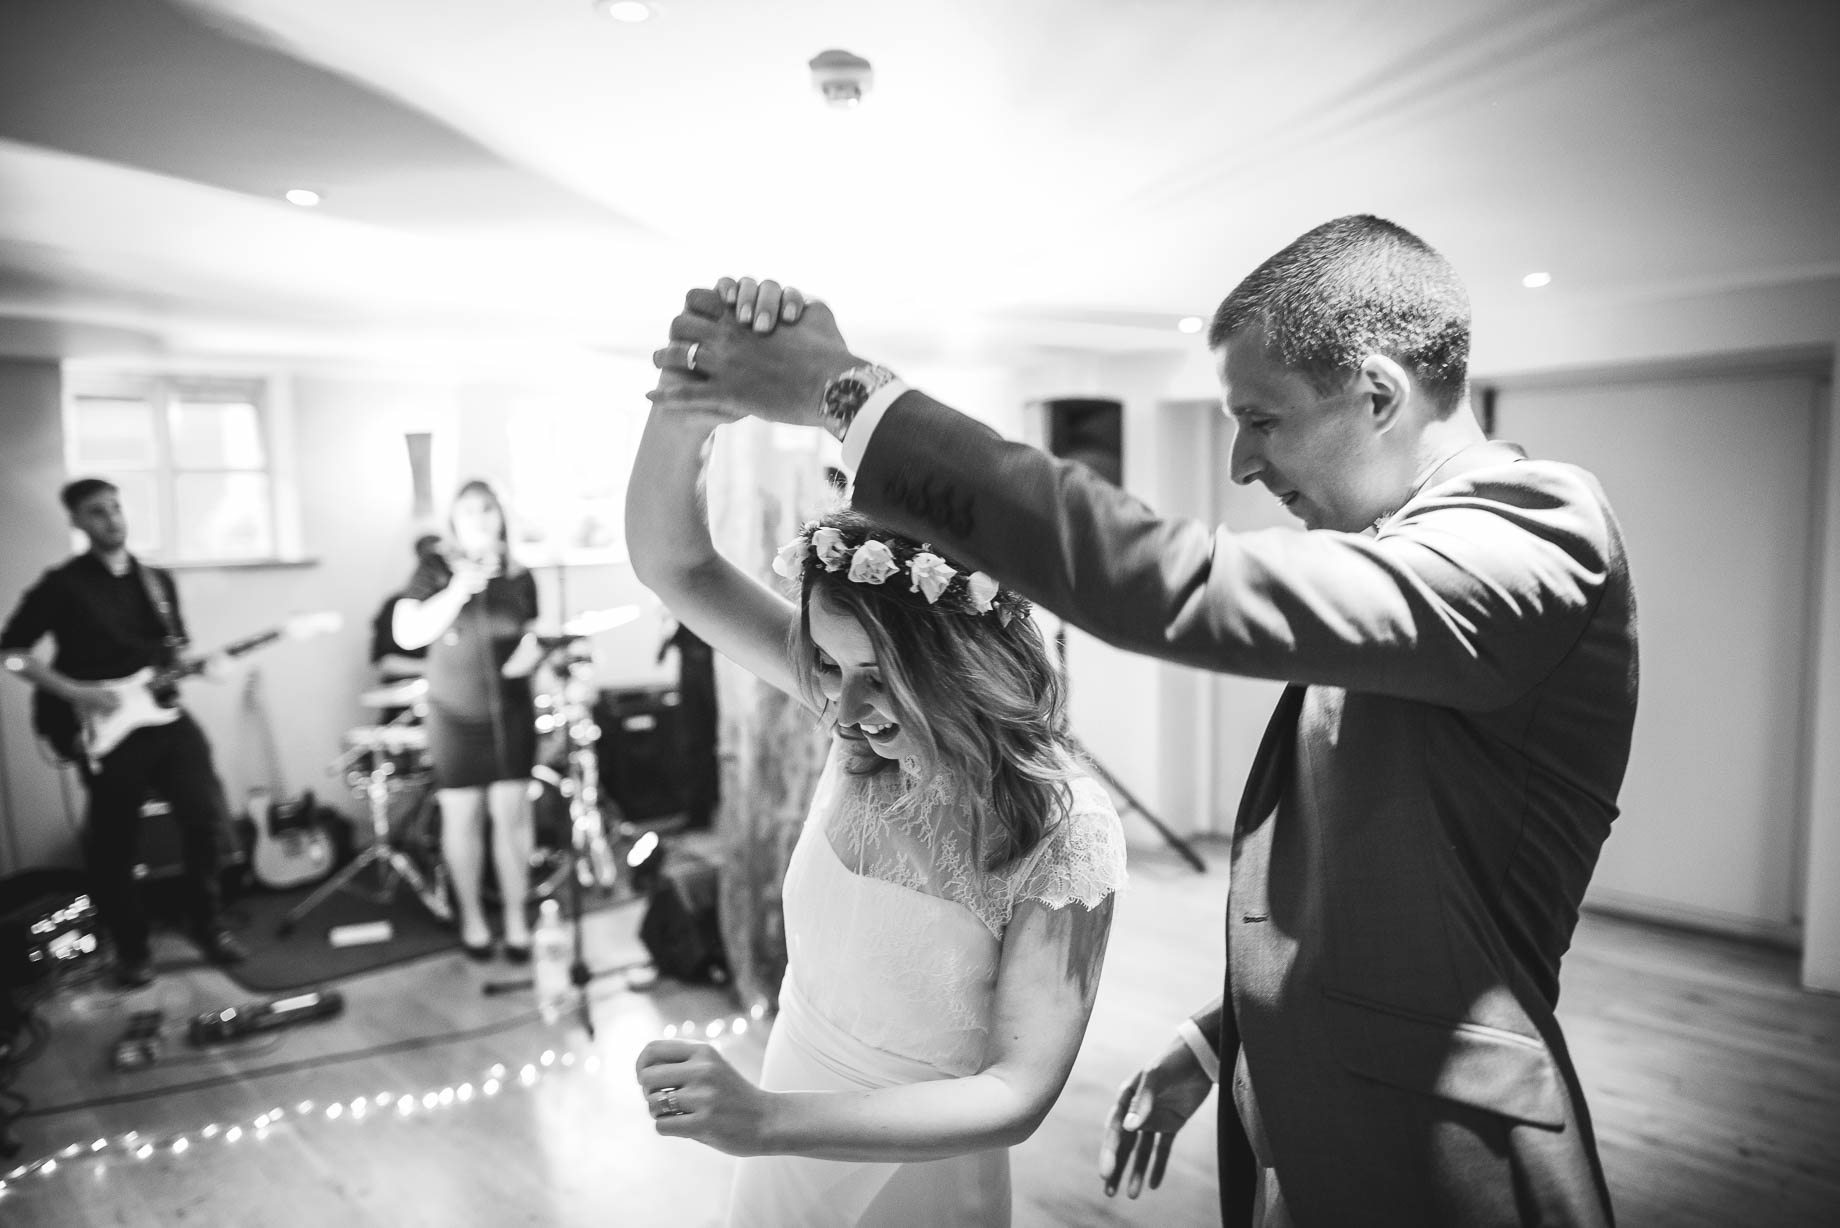 Bury Court Barn wedding photography by Guy Collier - Jo and Jamie (155 of 160)